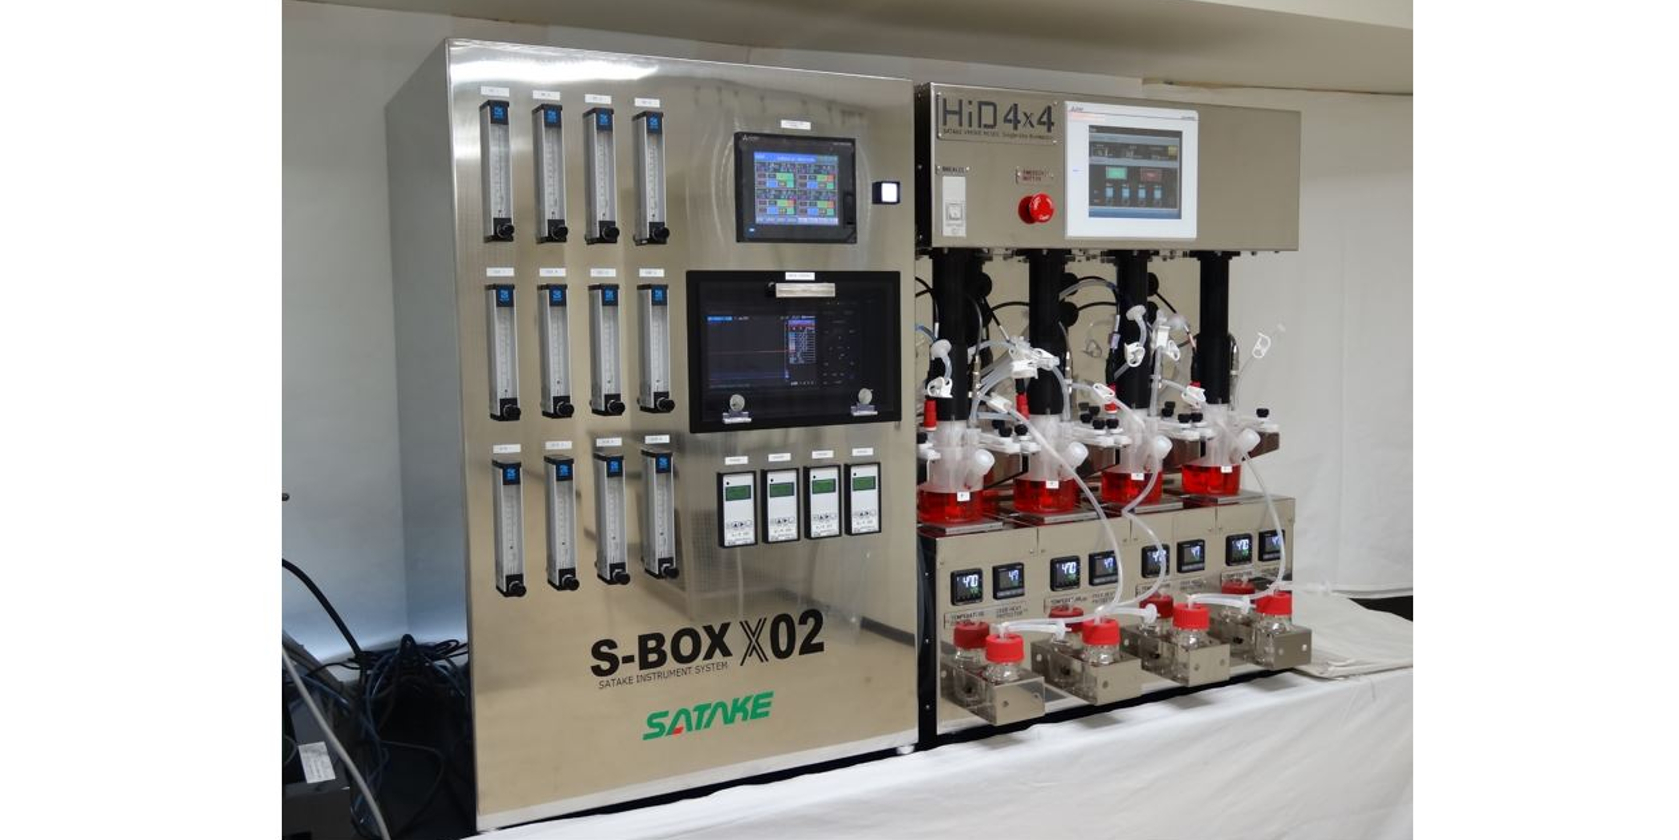 Satake Chemical Equipment to Launch World's First Industrial iPSC Mass-Production System